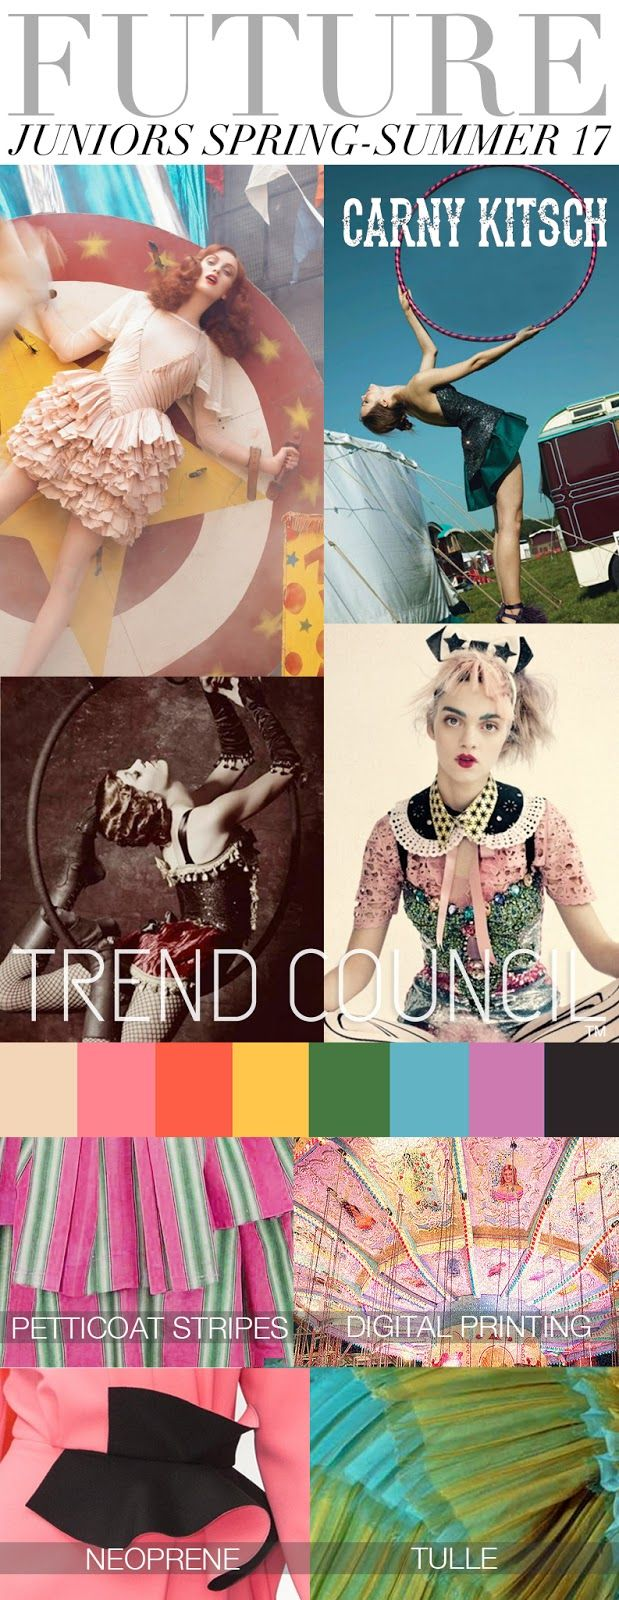 """SS17 Long Term Junior Trends feminize the post apocalyptic steam punk into a trend we are dubbing """"Carny Kitsch™"""". Burning Man's future art theme """"Carnival of Mirrors"""" will lock this in as one of the most important Junior Trends of the season."""